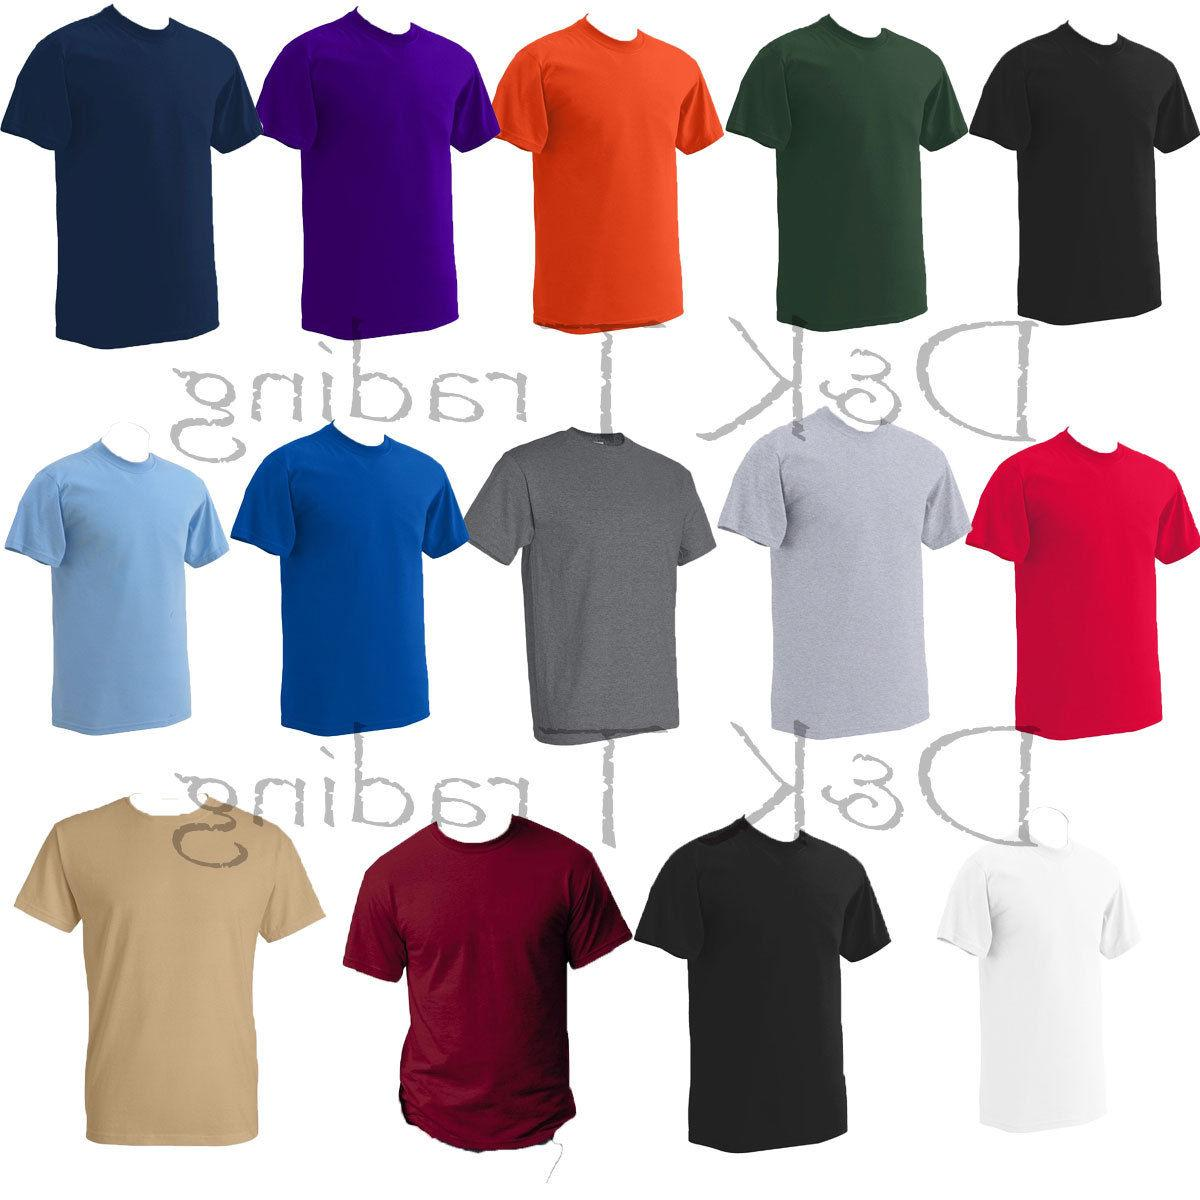 PRO CLUB MEN'S SOLID NECK SLEEVE T-SHIRT S